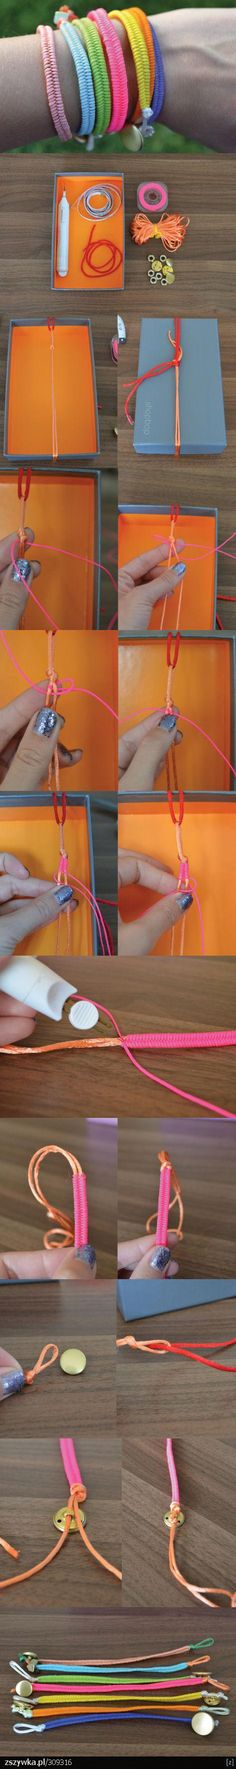 @Shelsea Malin Malin Malin Bartoo You can tie your work to a box or clip board if you don't want to use a loom.